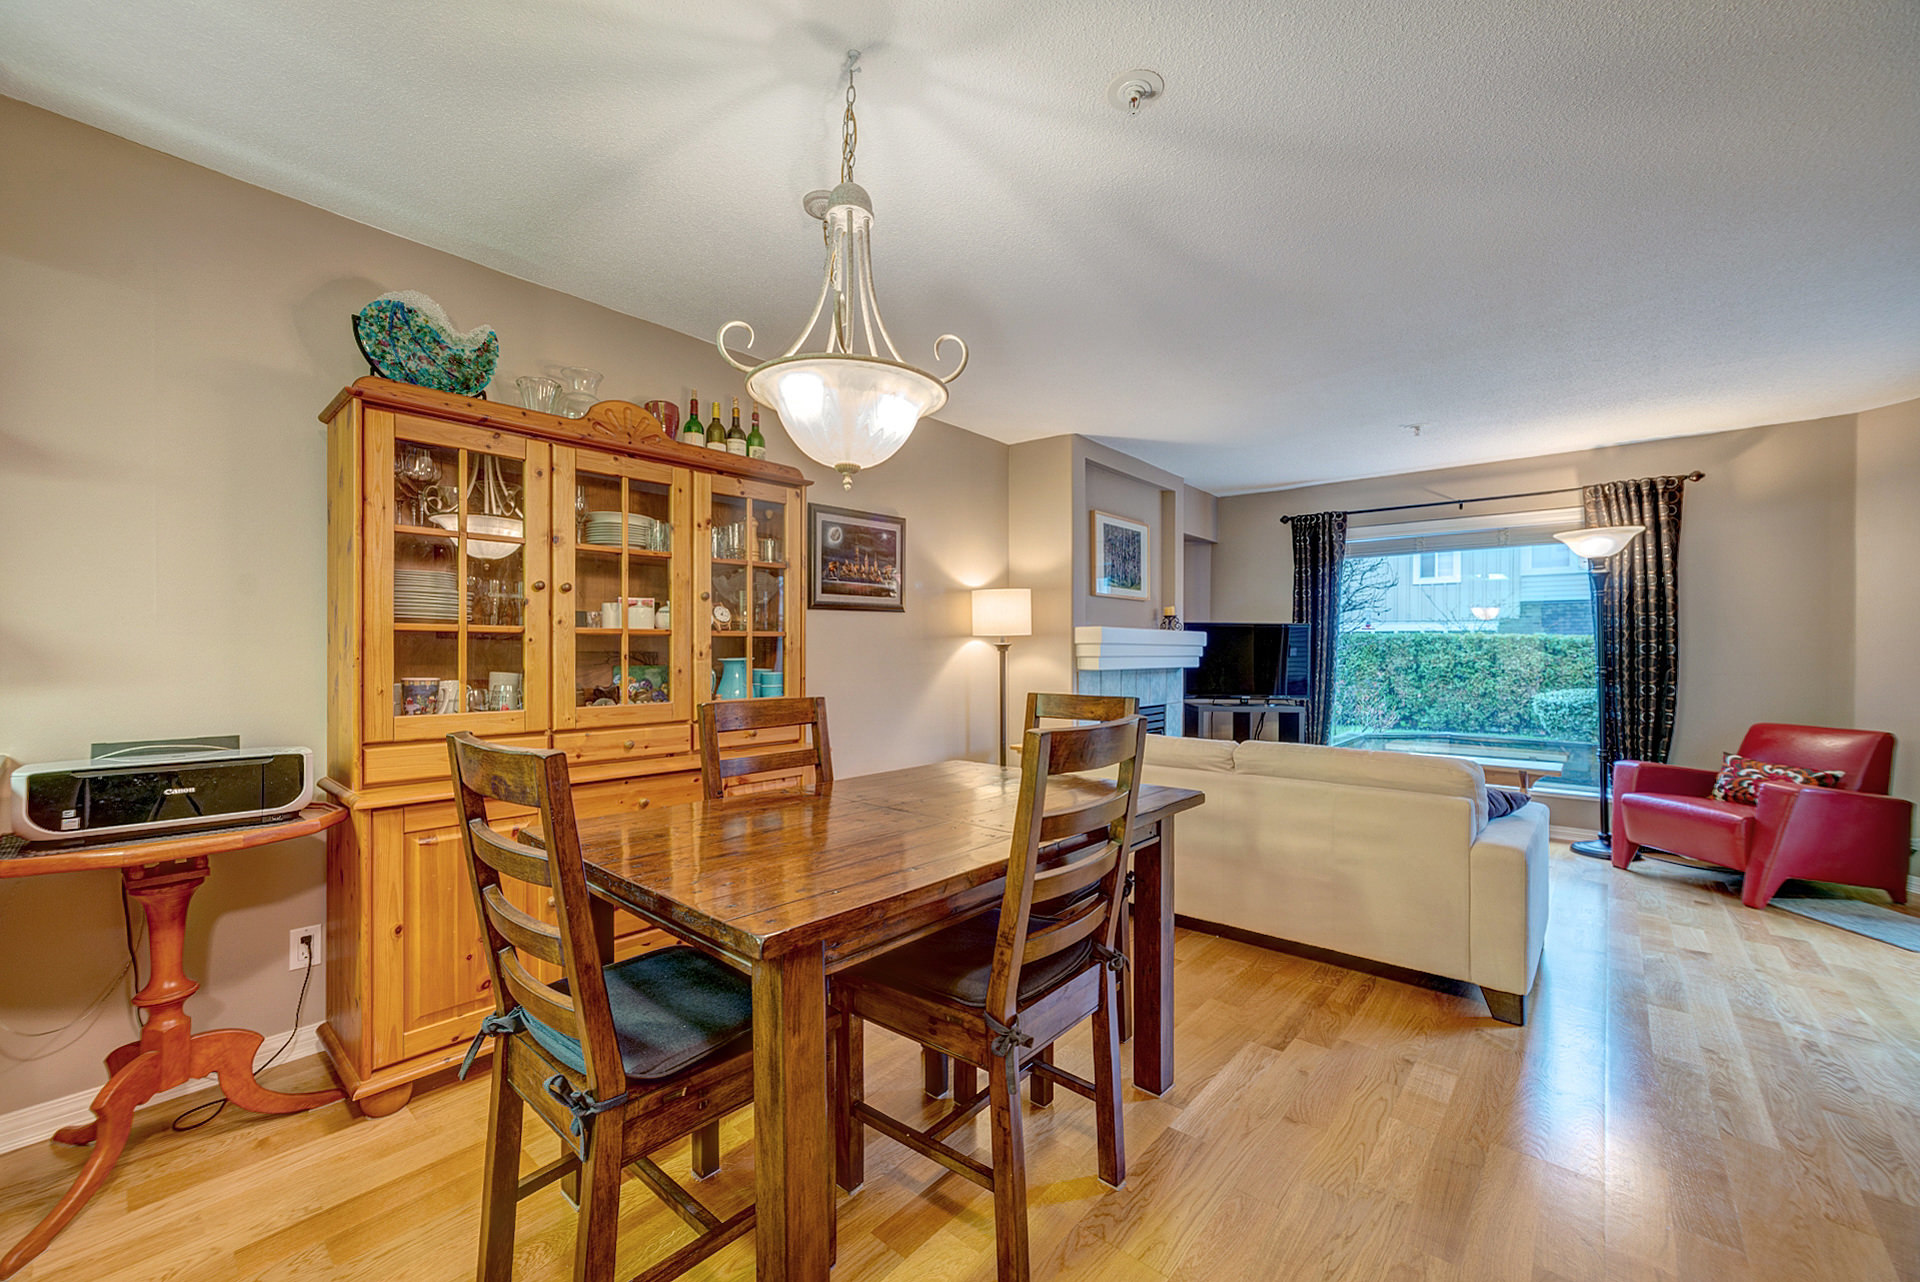 31207_8 at 105 - 1650 Grant Avenue, Glenwood PQ, Port Coquitlam